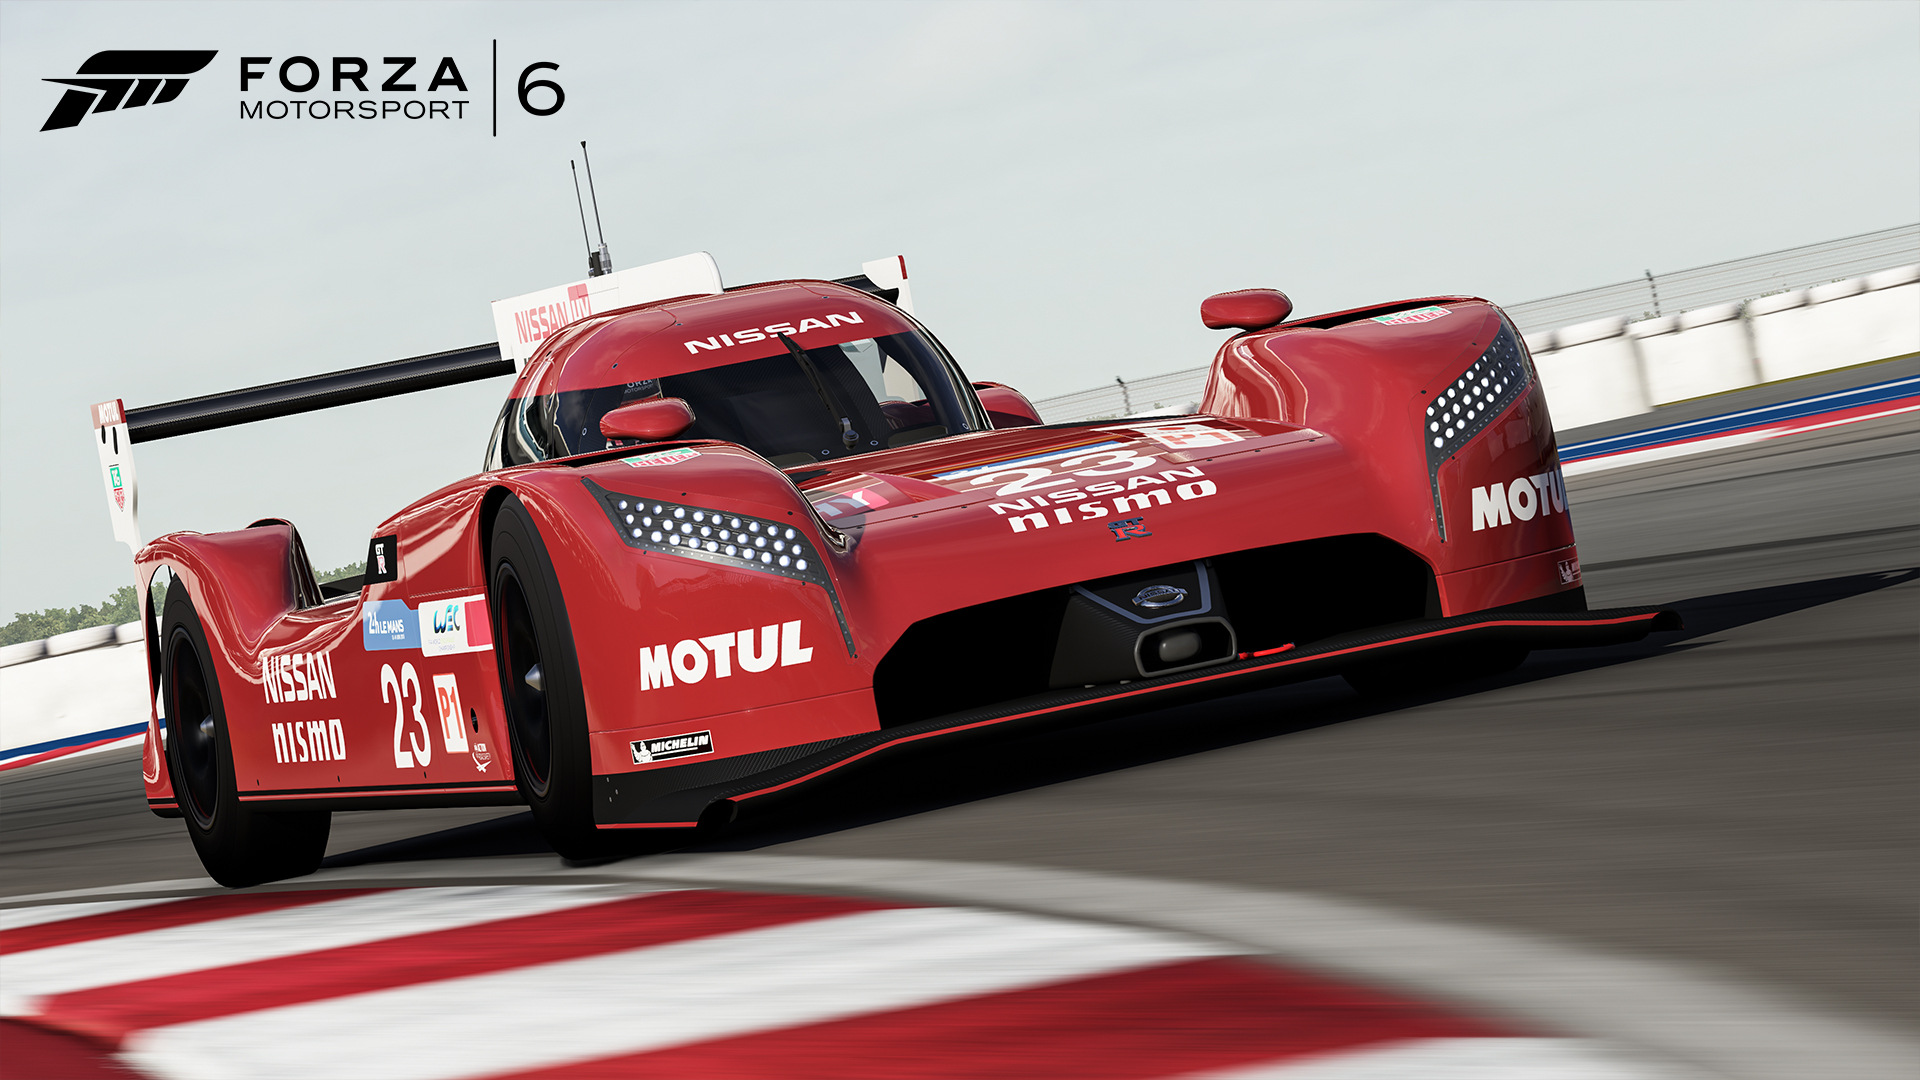 forza motorsport 6 mise jour de novembre et nissan gtr lm nismo gratuite. Black Bedroom Furniture Sets. Home Design Ideas